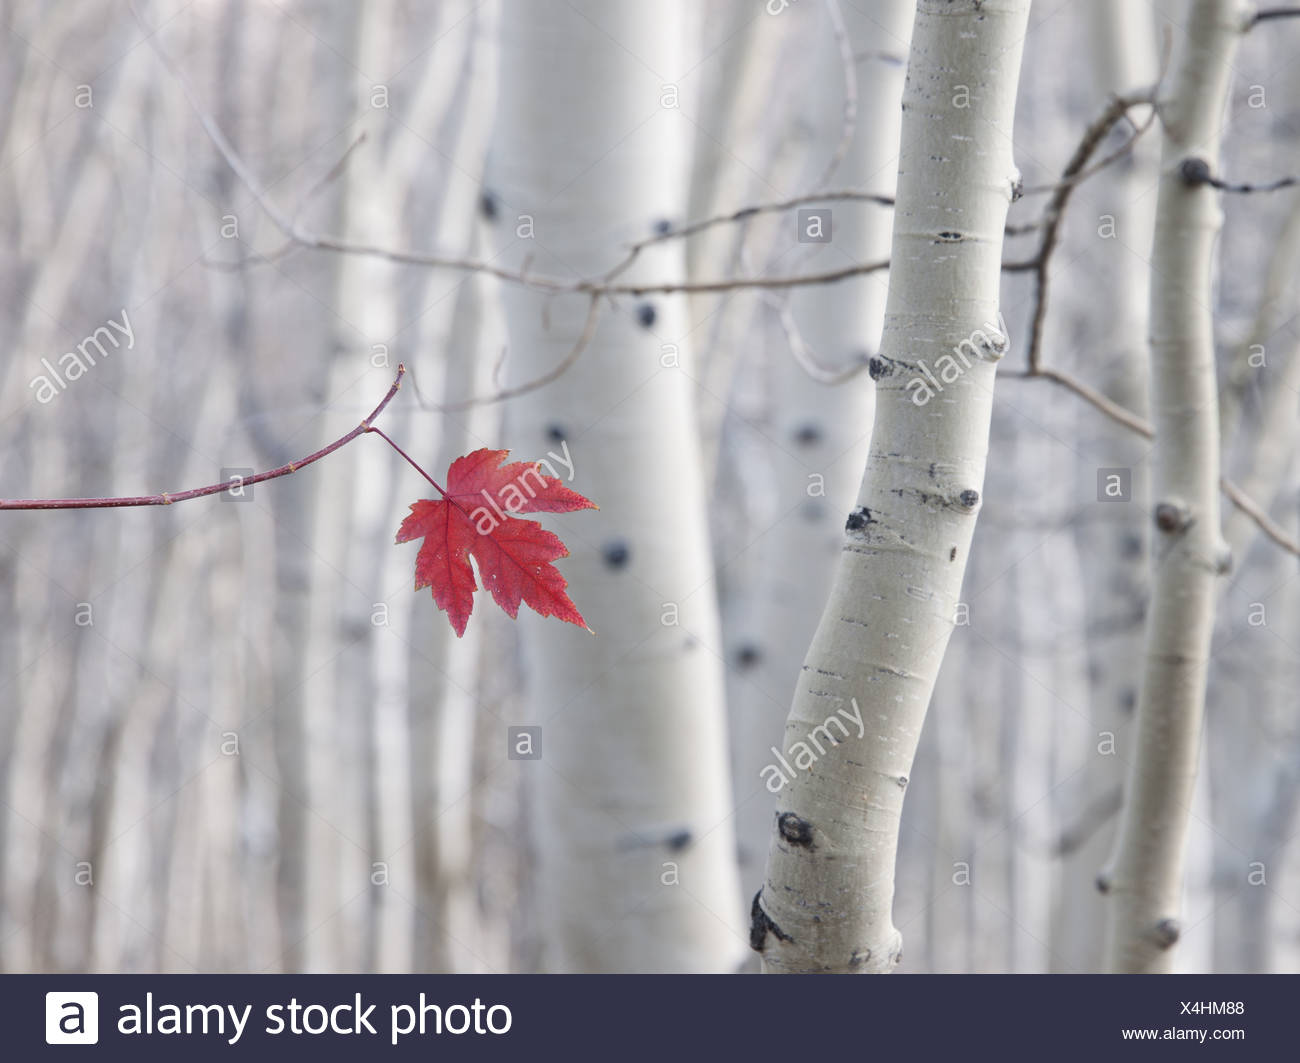 A single red maple leaf in autumn, against a background of aspen tree trunks with cream and white bark. Wasatch national forest. - Stock Image